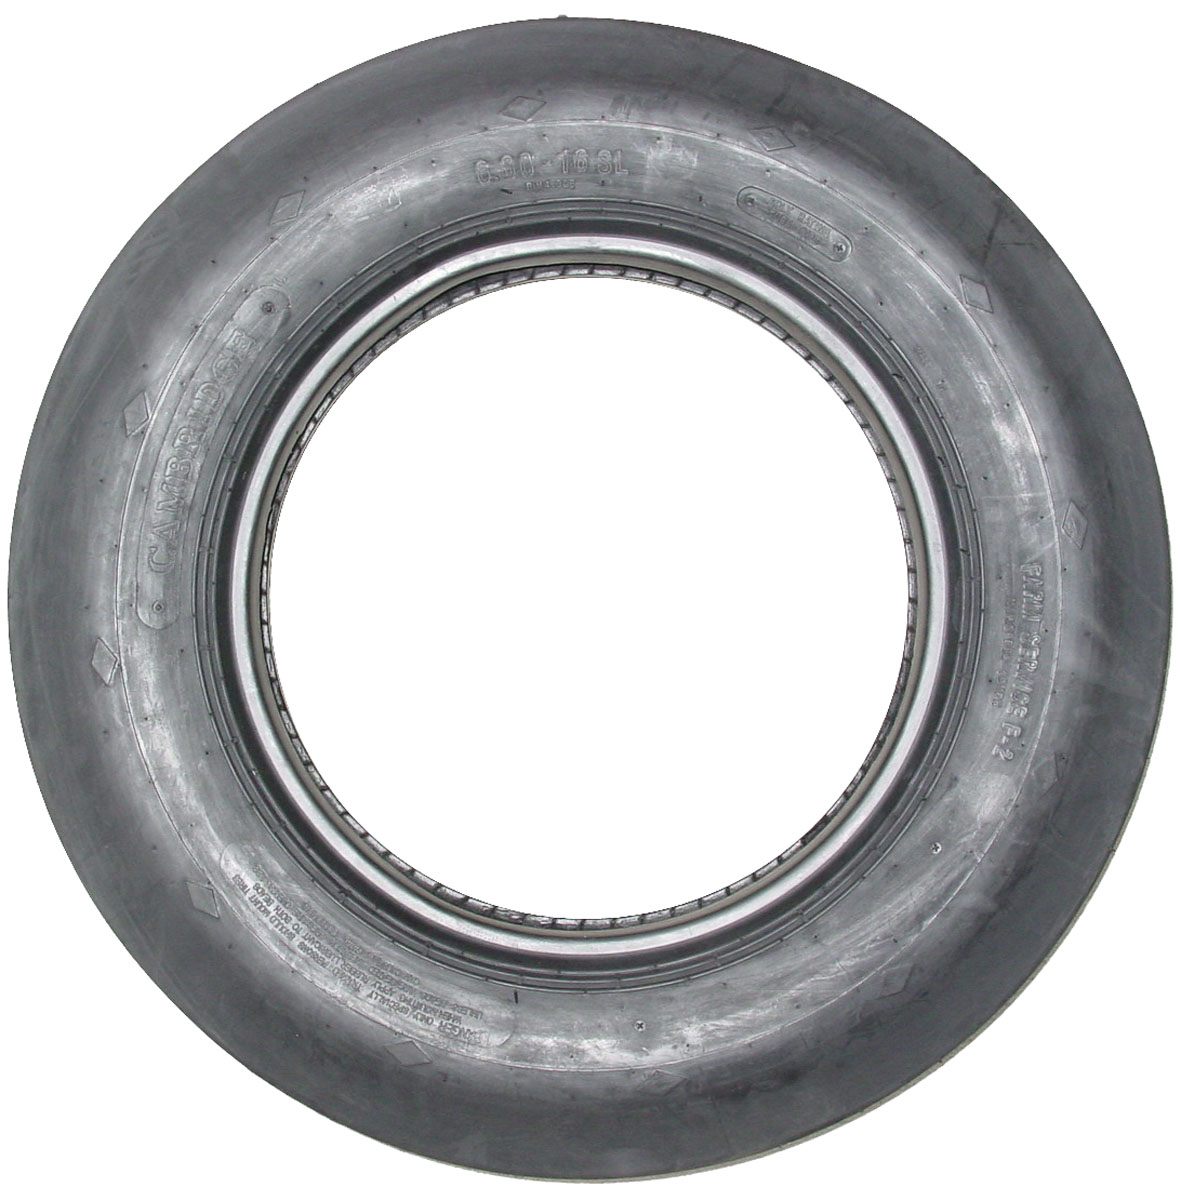 Ford N Tractor Parts For Series Tractors 8n 2n And Tire Only